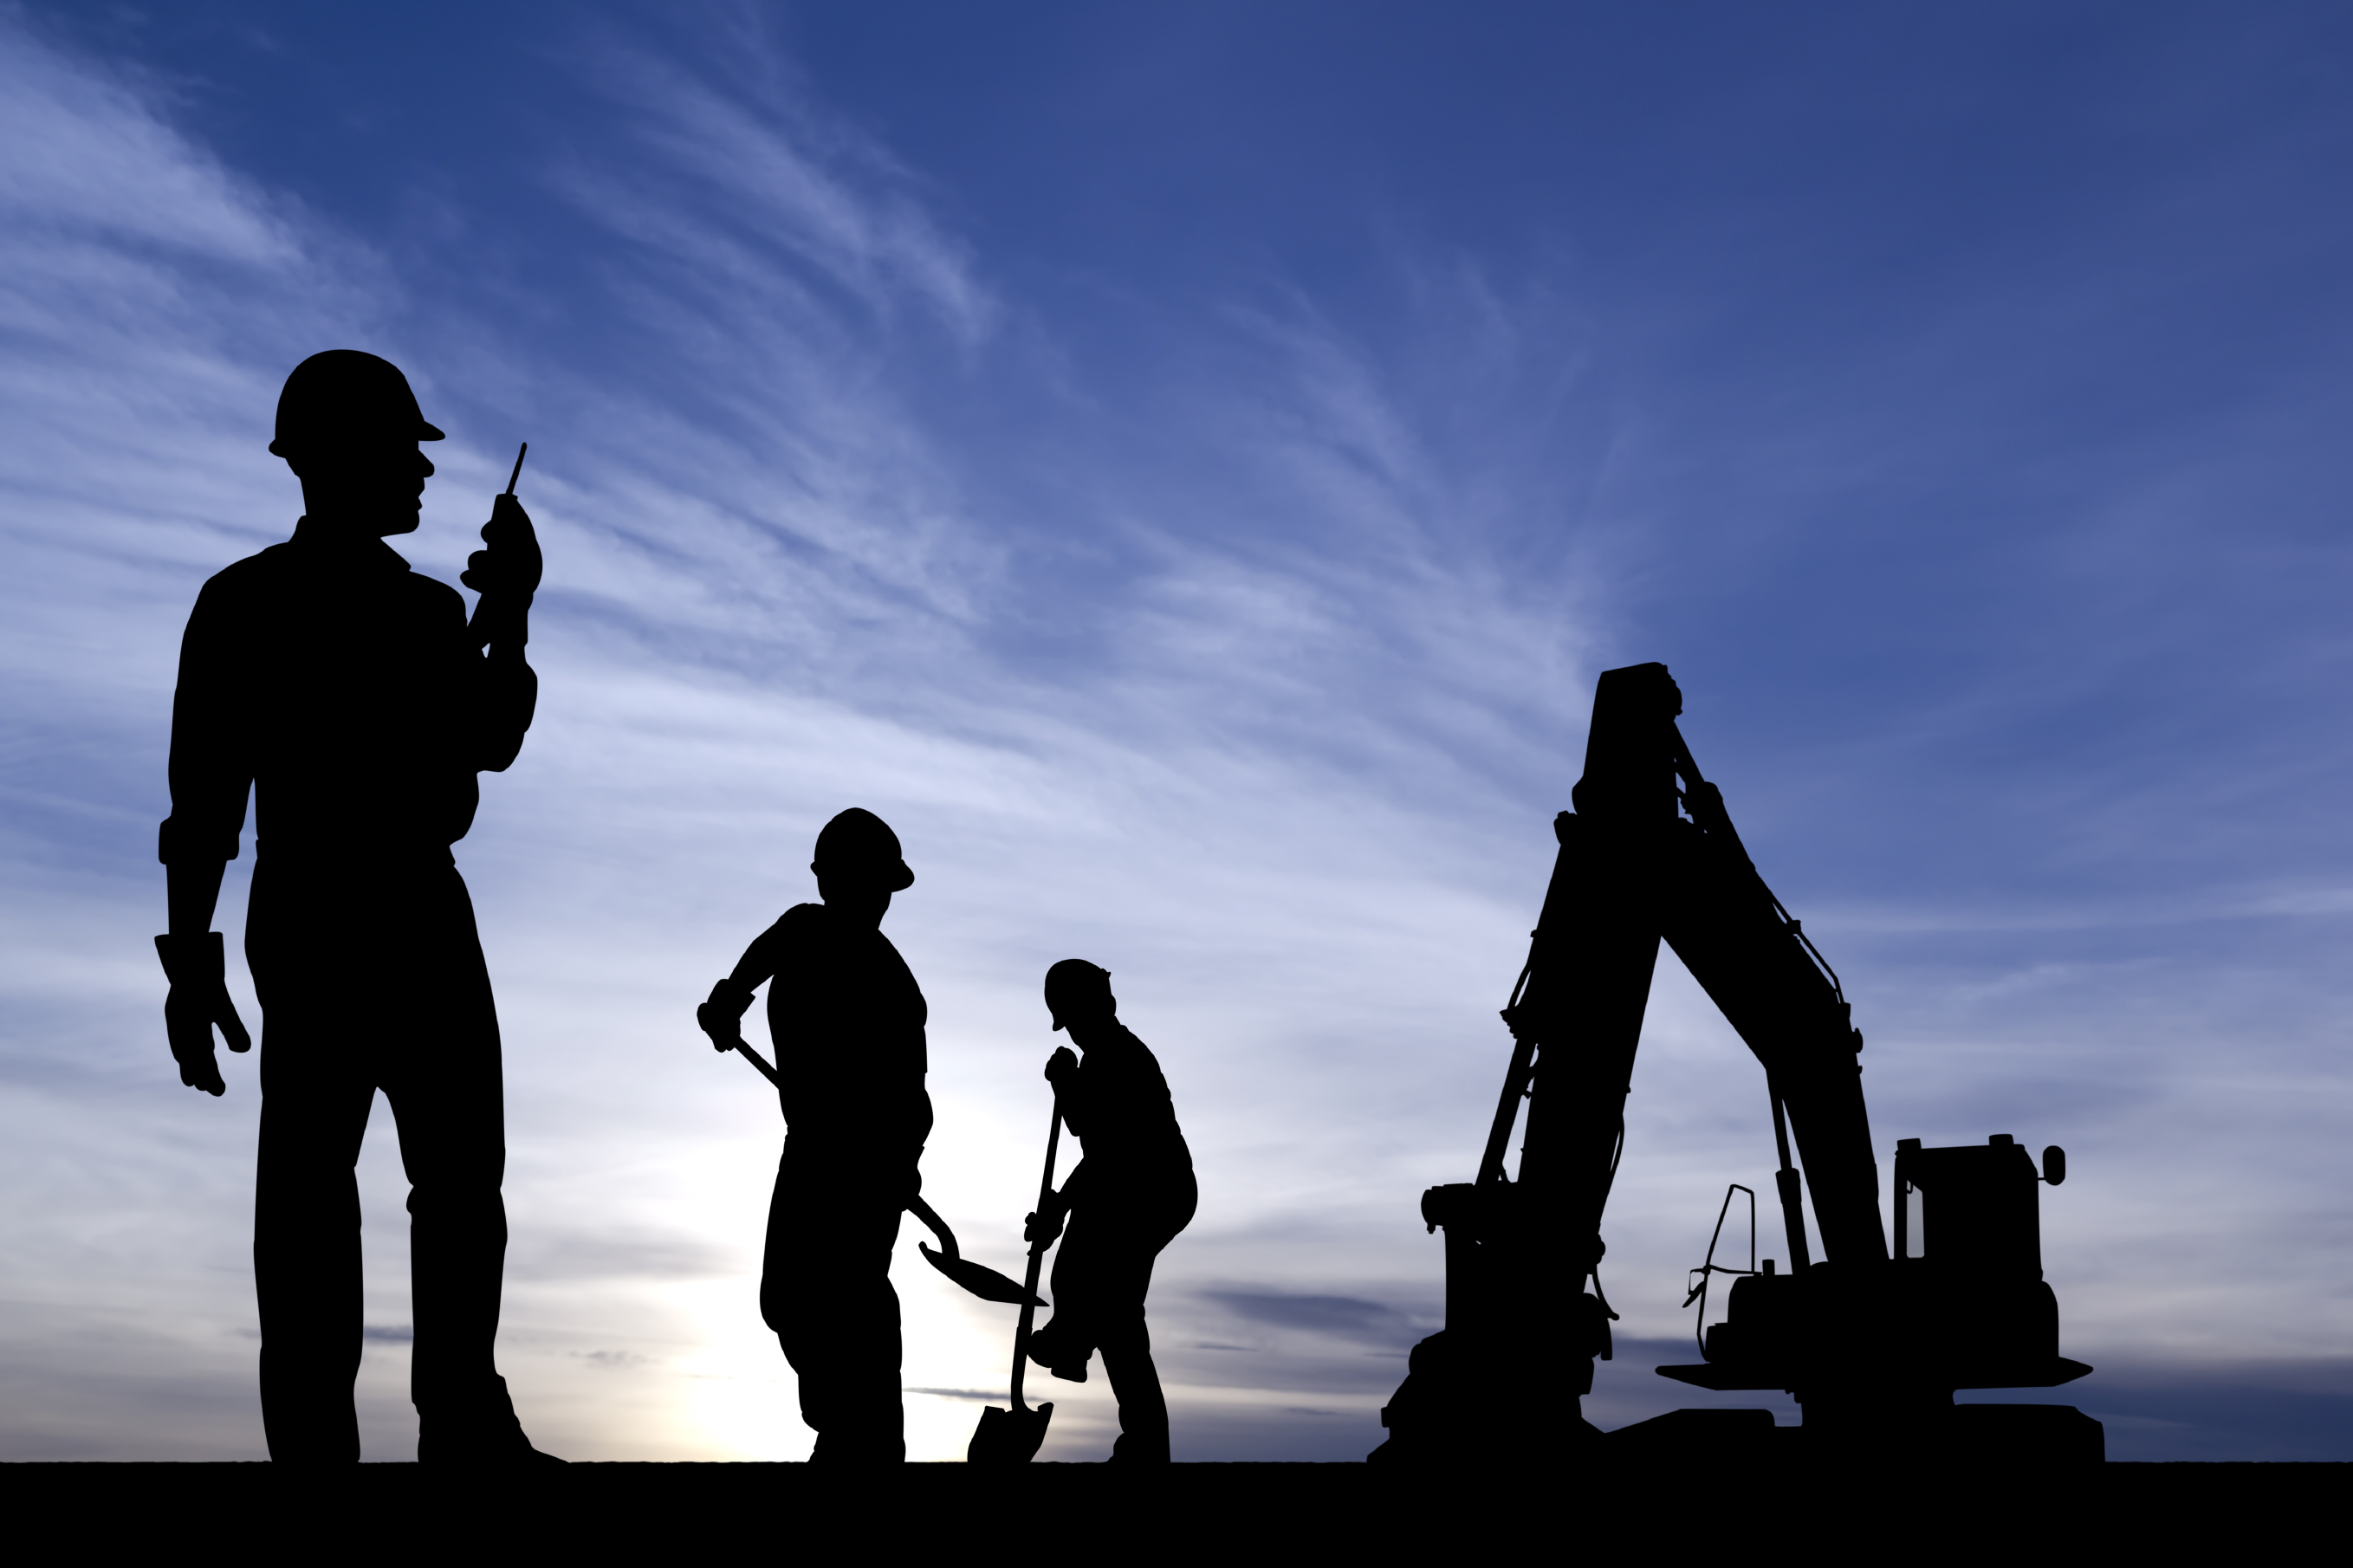 Safety and Rights – NGO works on improving workplace